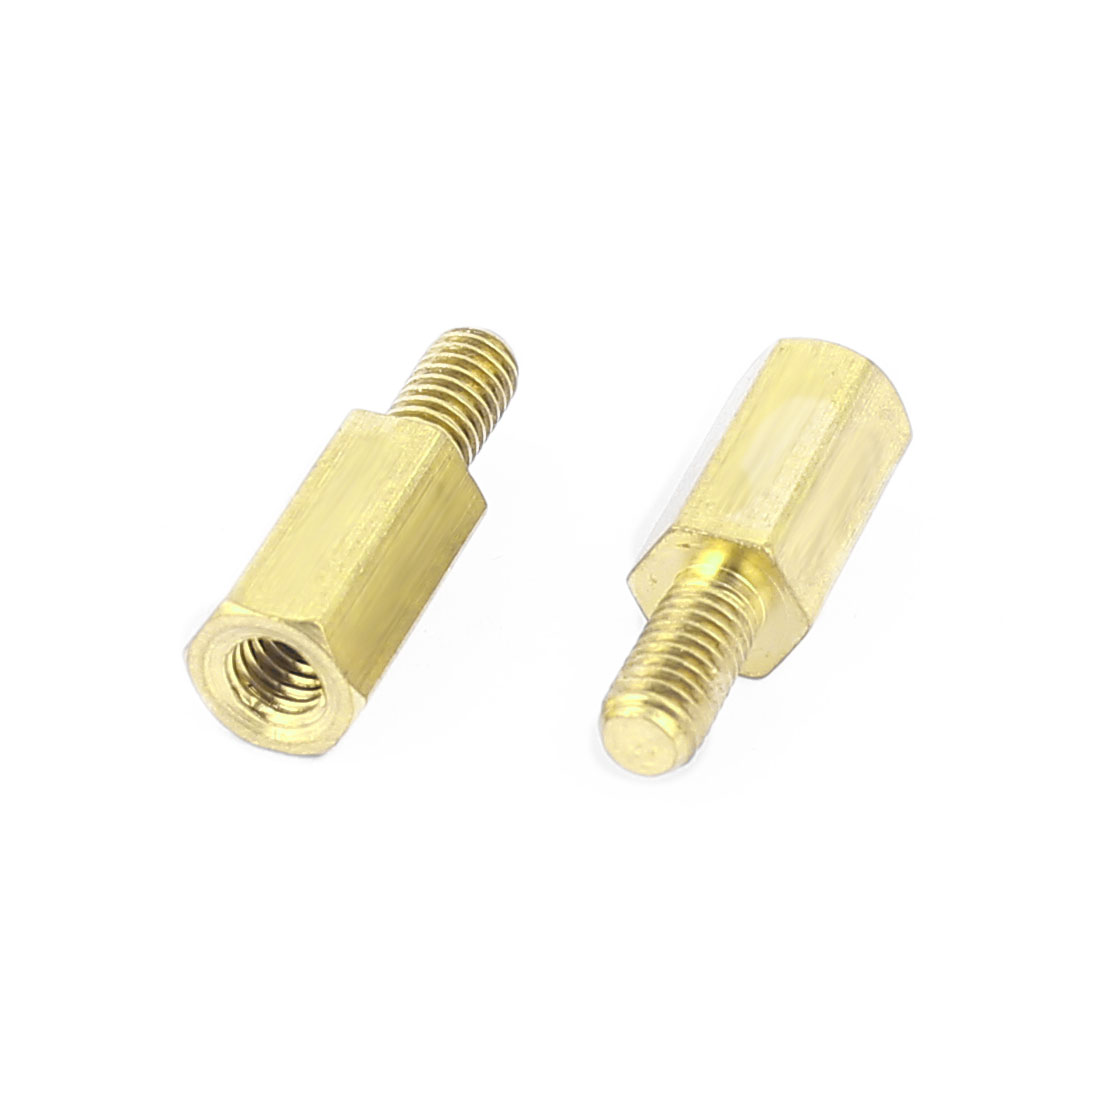 M3x9+6mm Female/Male Threaded Brass Hex Standoff Pillar Spacer Coupler Nut 35pcs - image 1 of 2